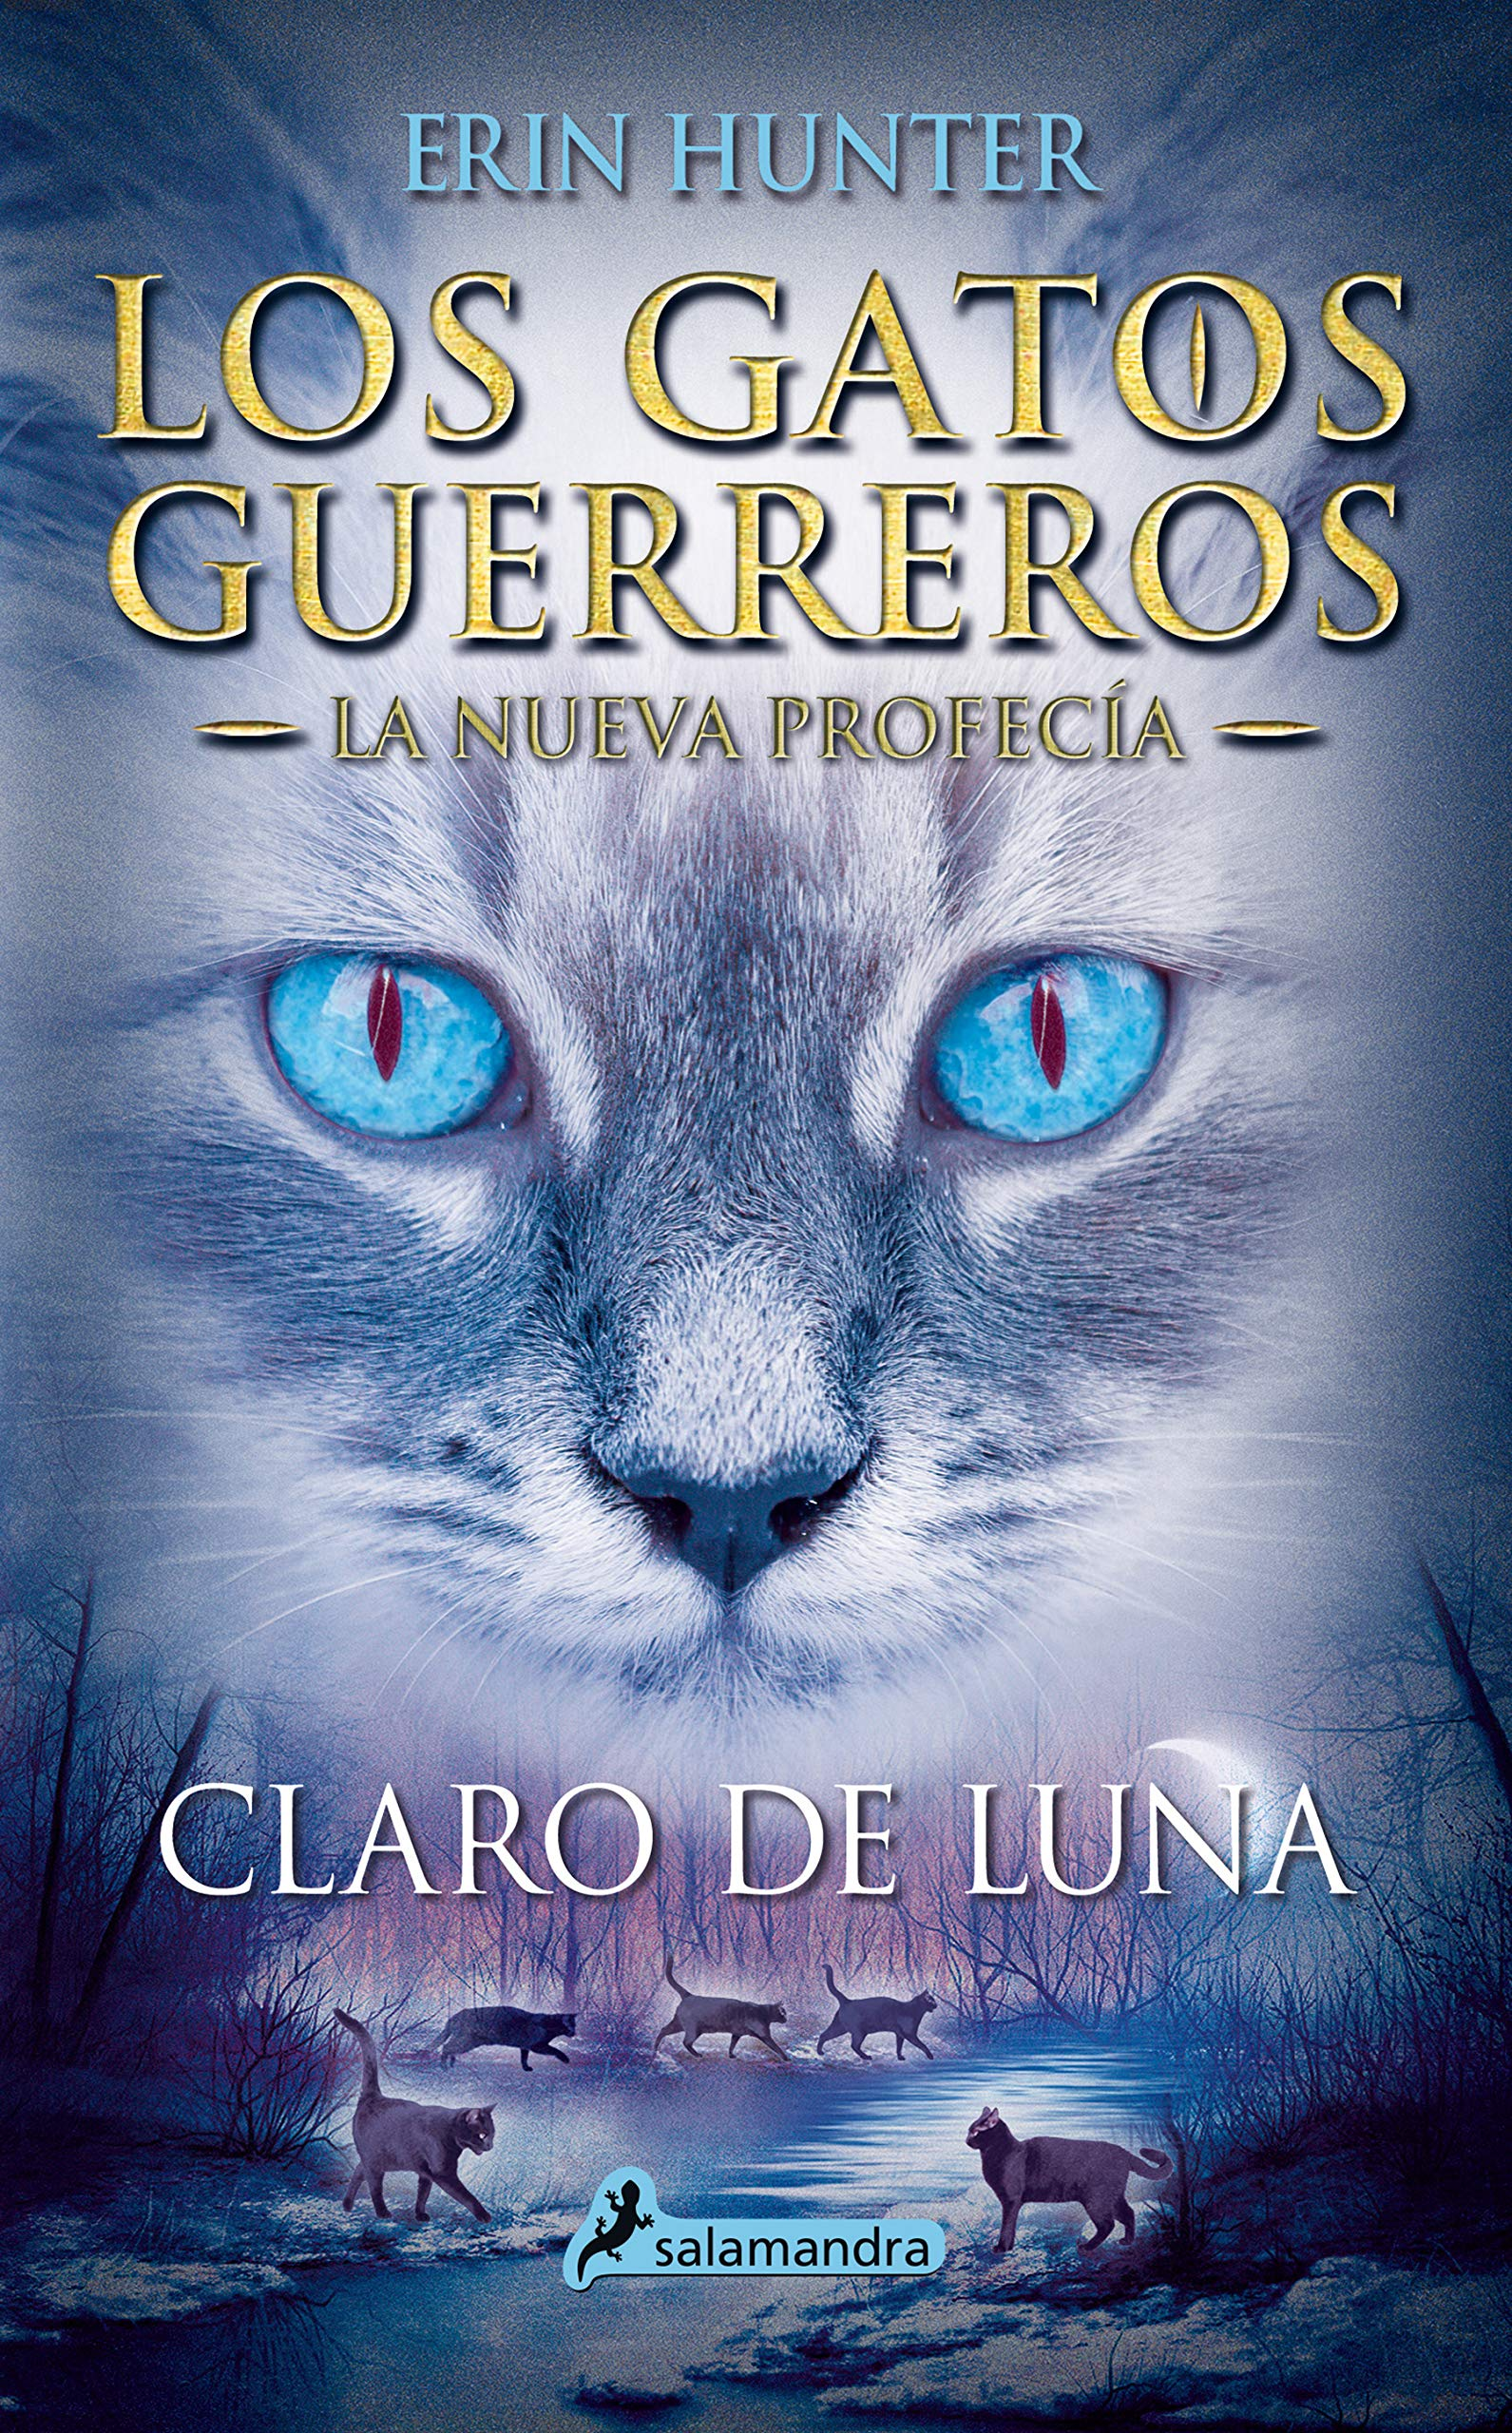 Claro De Luna Moonrise Gatos Guerreros Warriors Spanish Edition 9788498386240 Hunter Erin Books